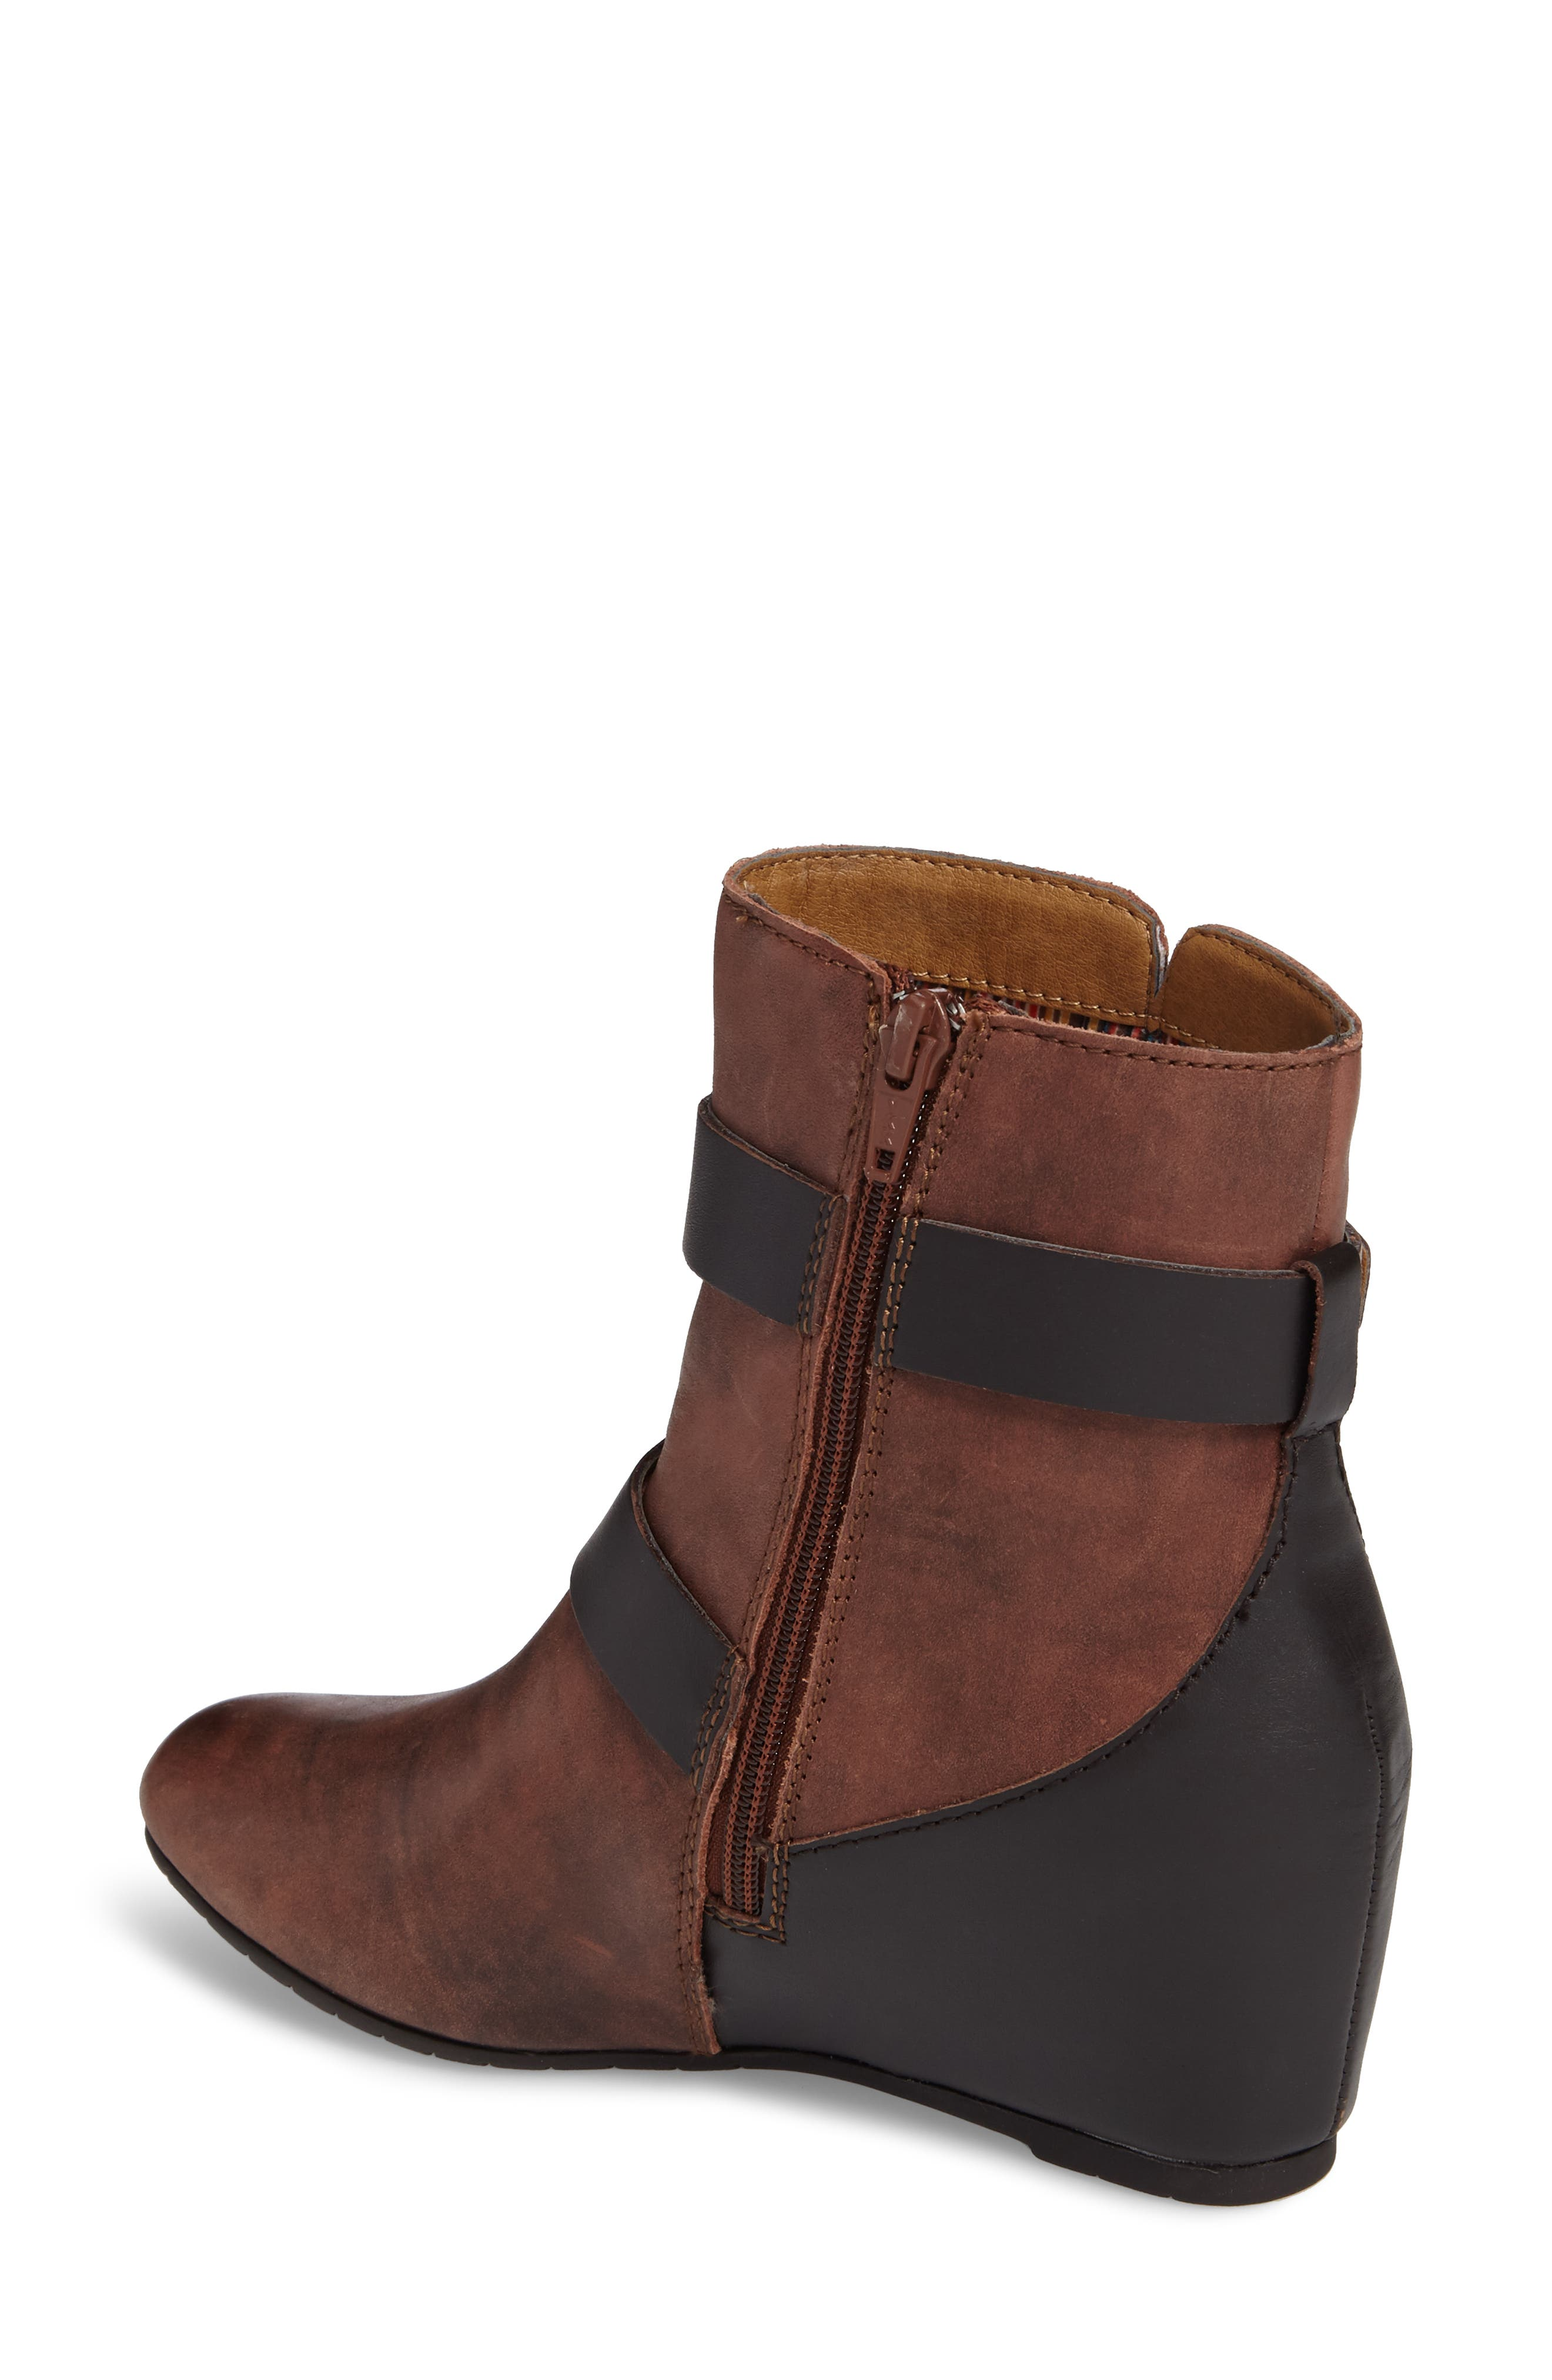 Ramika Wedge Bootie,                             Alternate thumbnail 6, color,